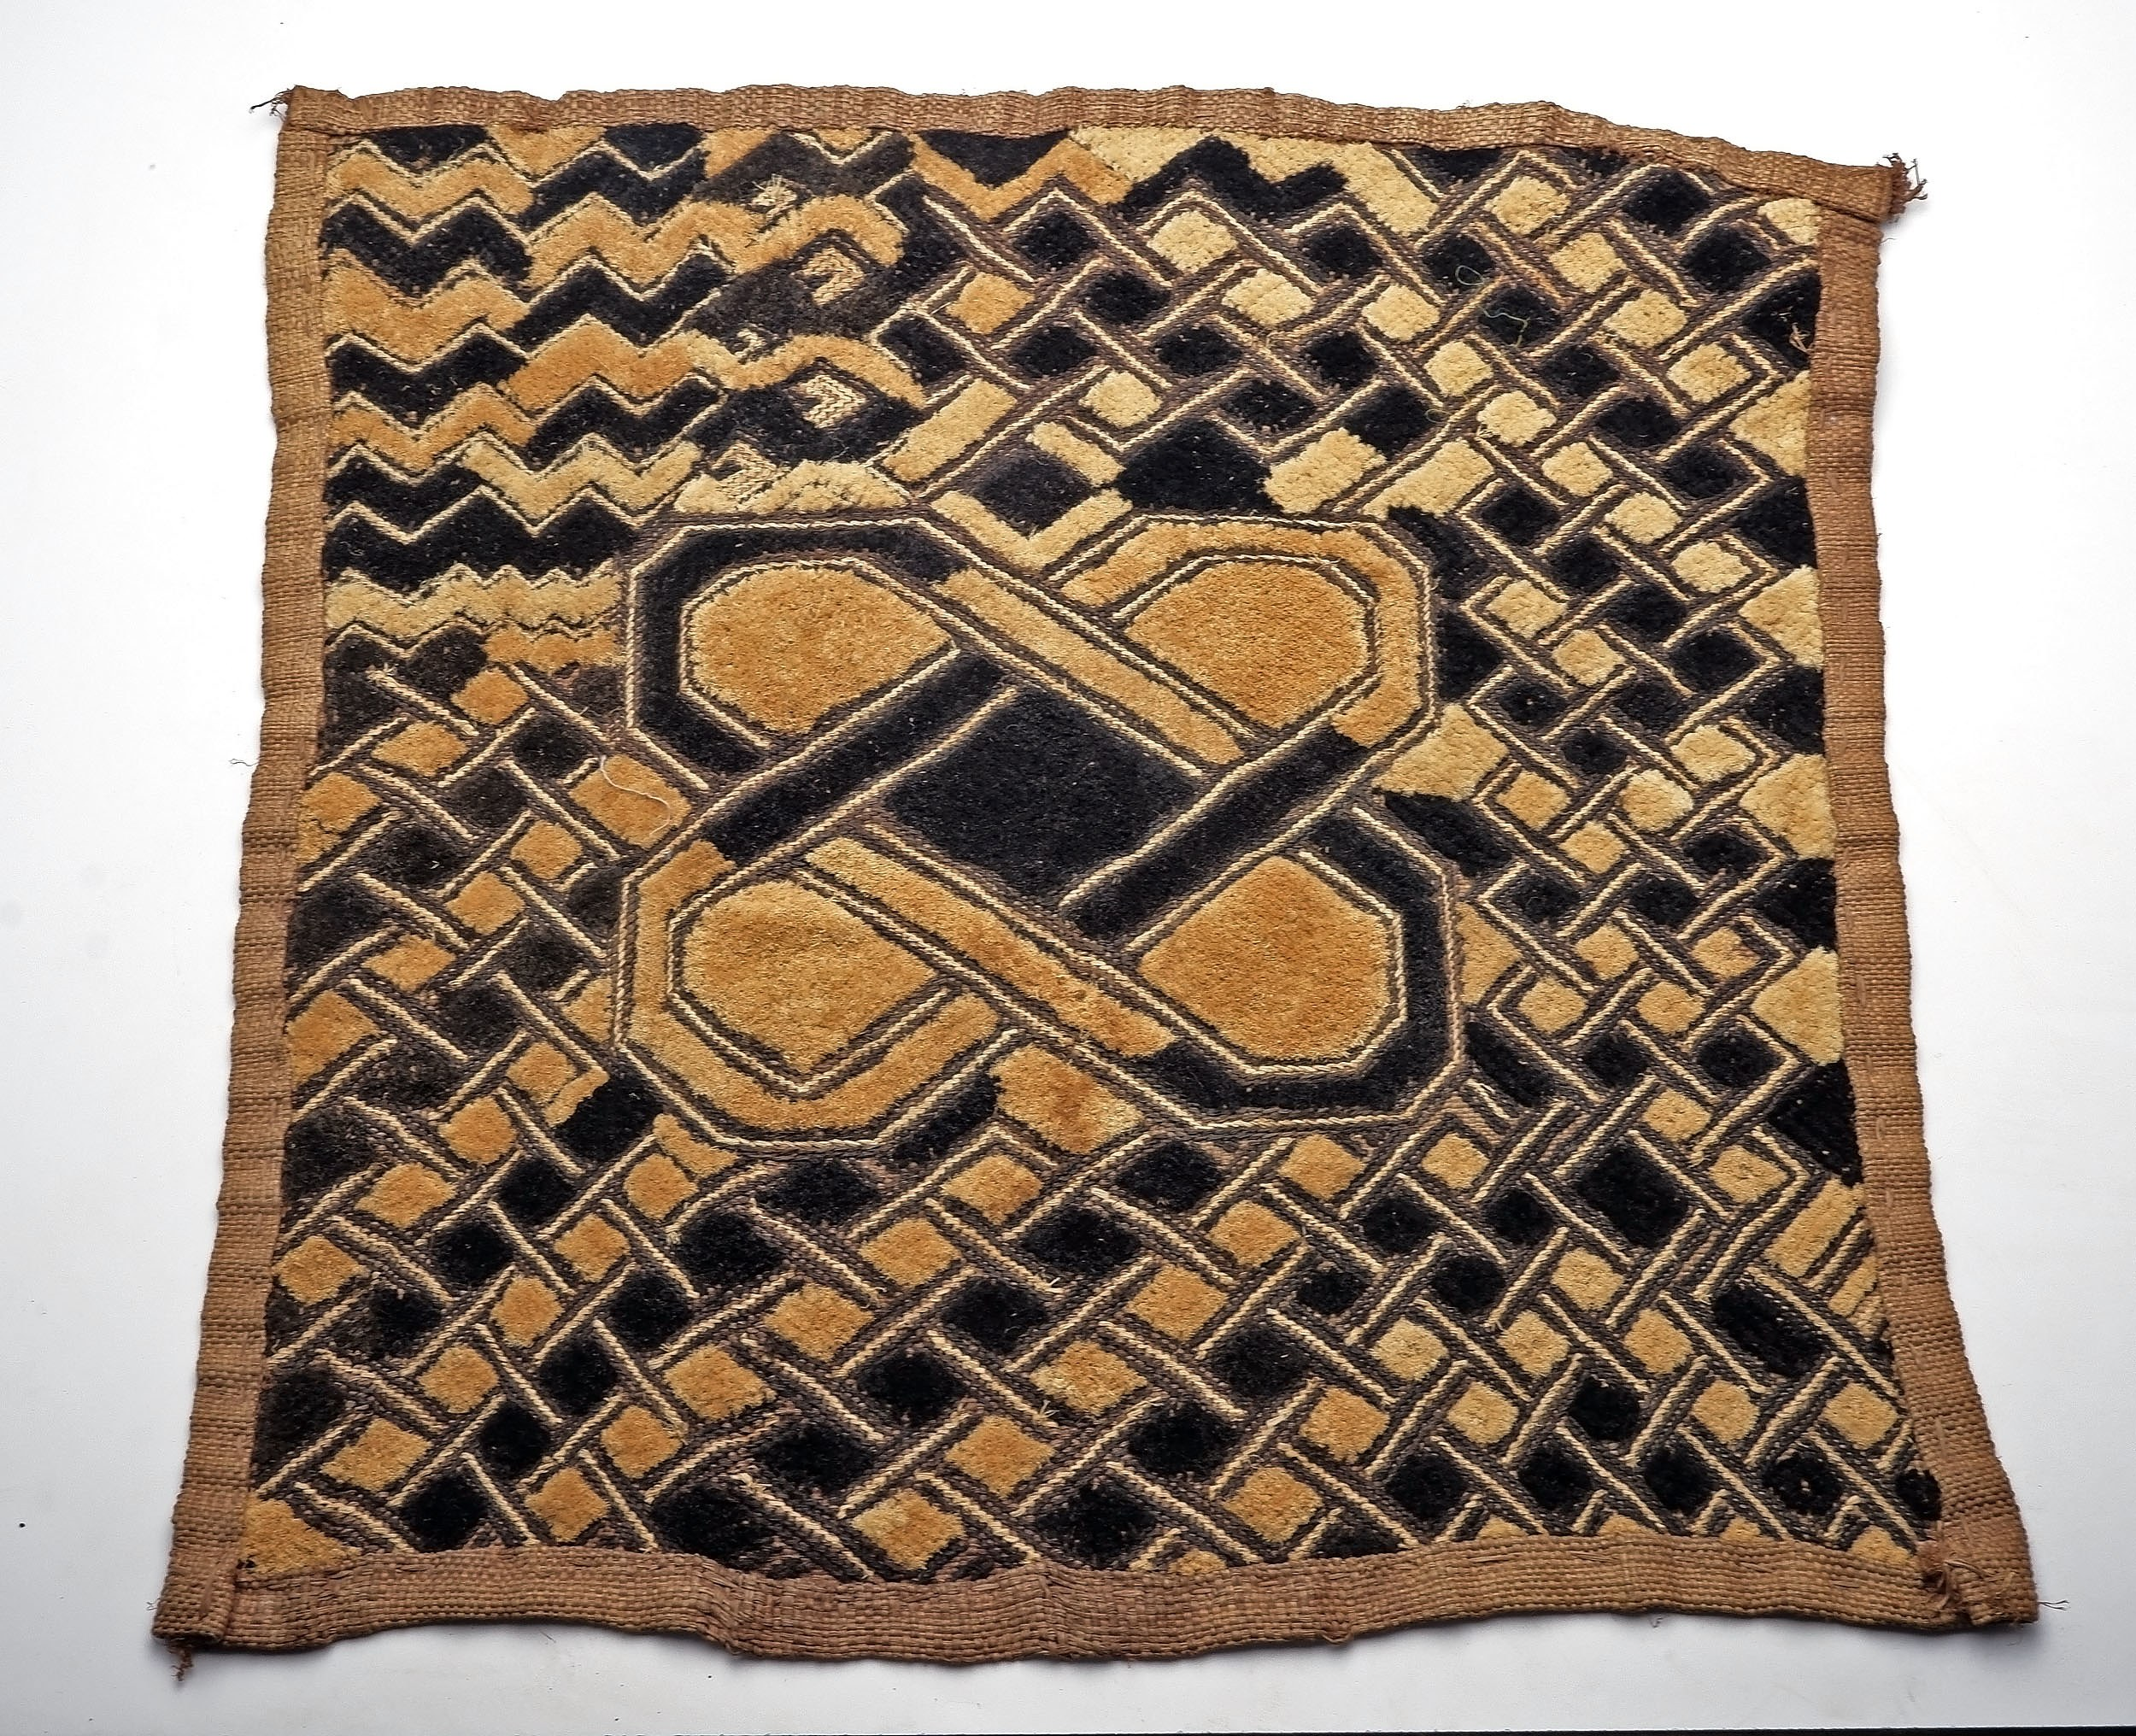 'Cloth, Kuba/Shoowa Tribe, Democratic Republic of Congo'